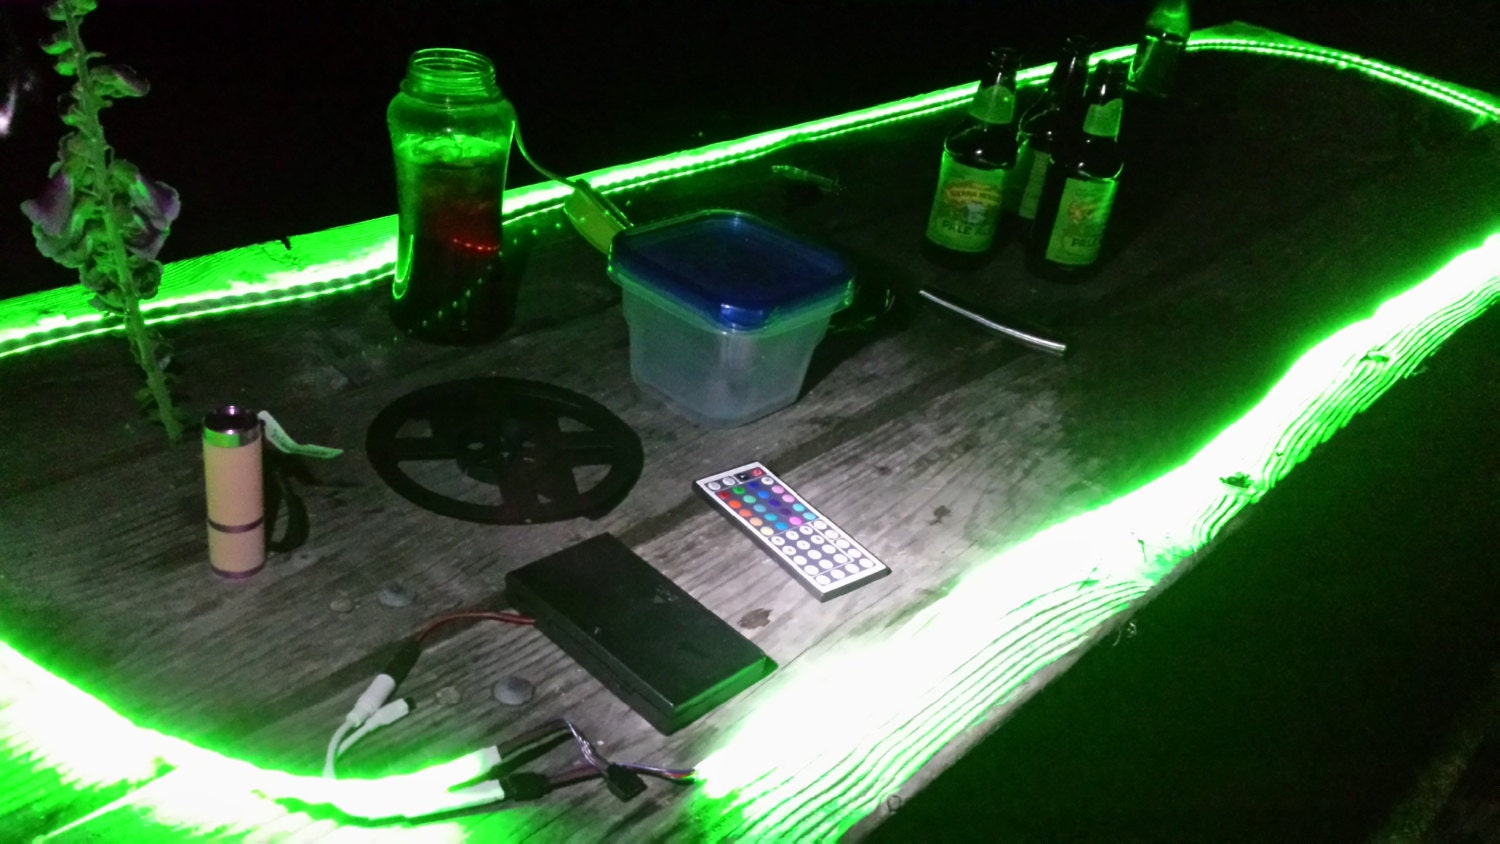 Camping battery operated led strip light kit 44 key remote zoom aloadofball Gallery